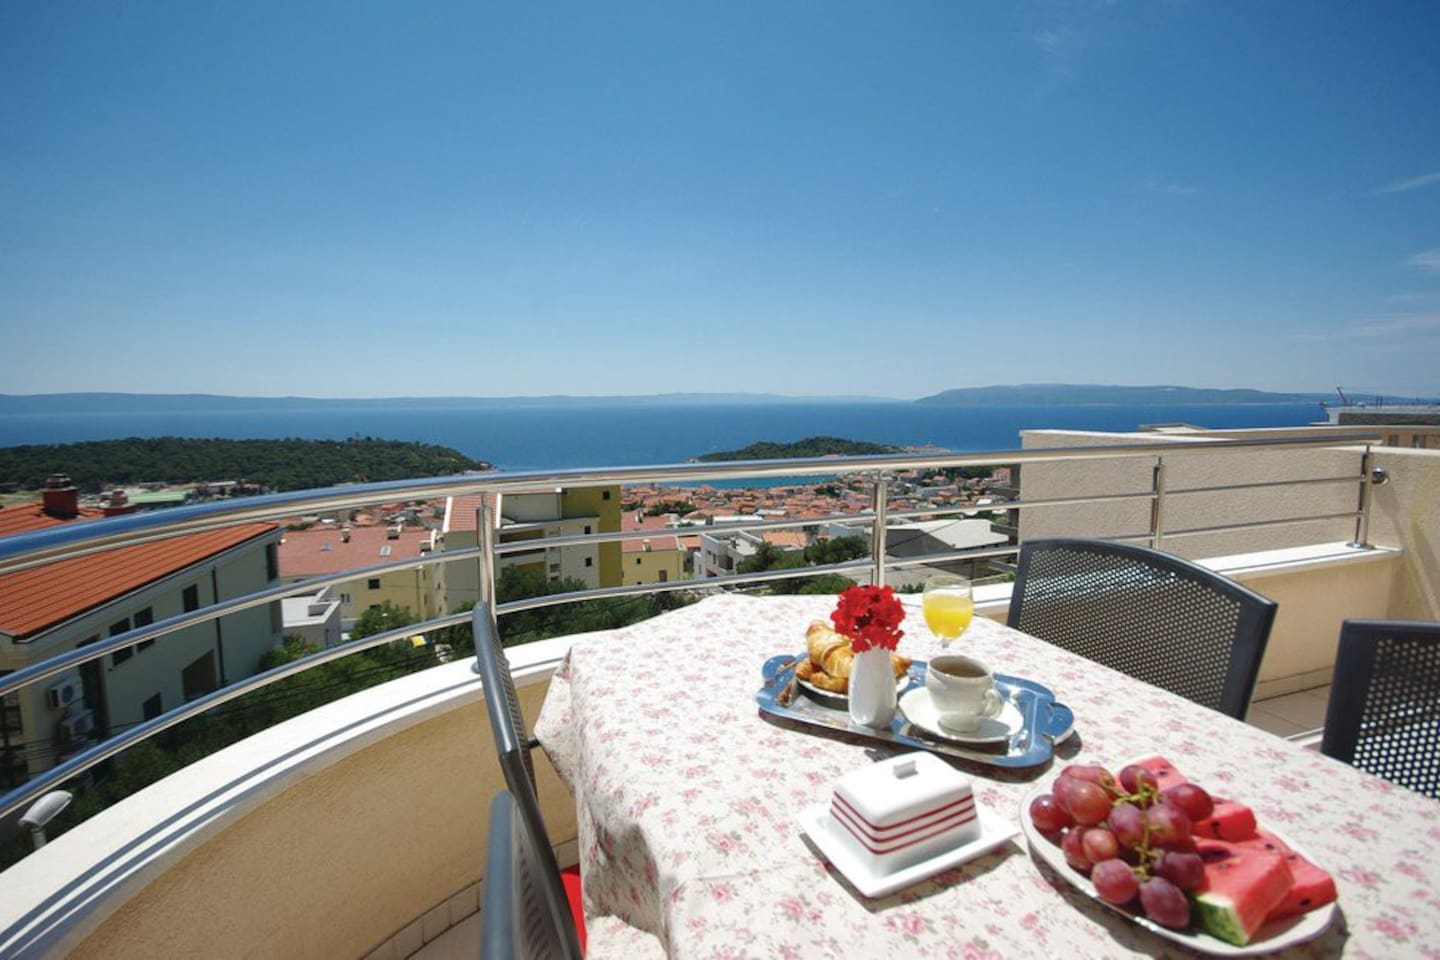 Terrace with sea view and Dalmatian islands